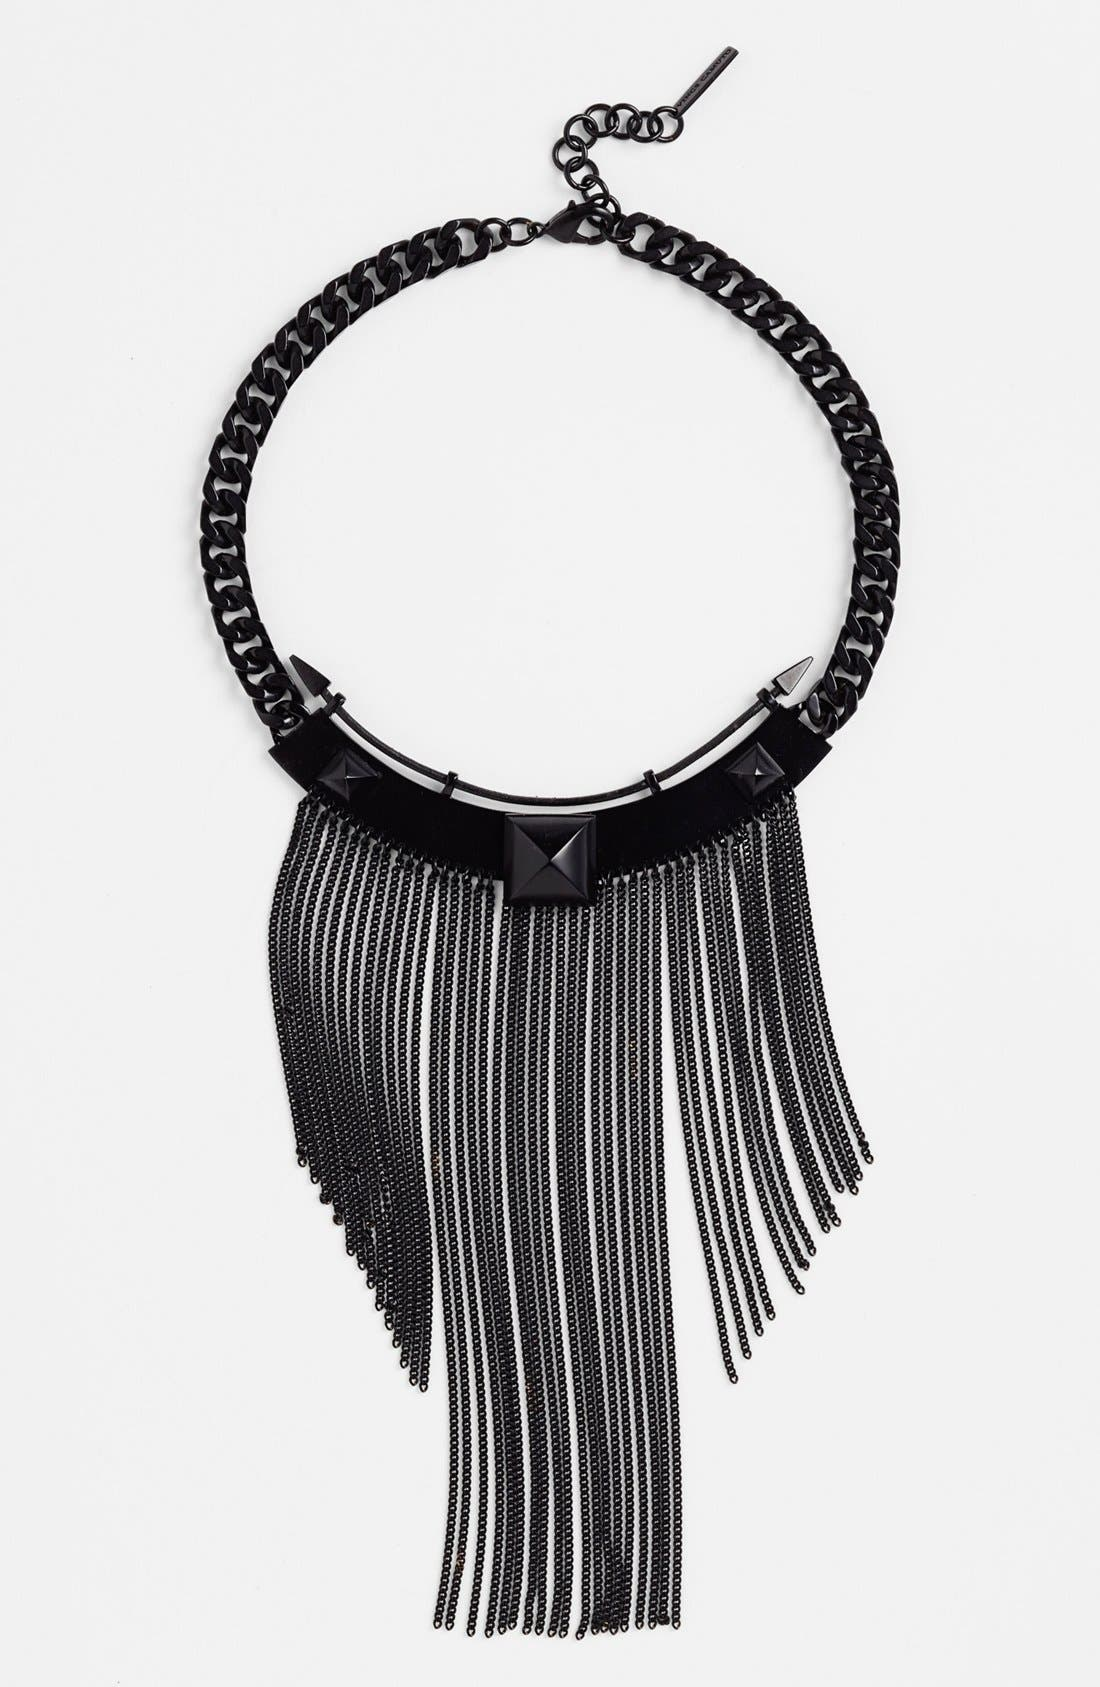 Alternate Image 1 Selected - Vince Camuto Chain Fringe Collar Necklace